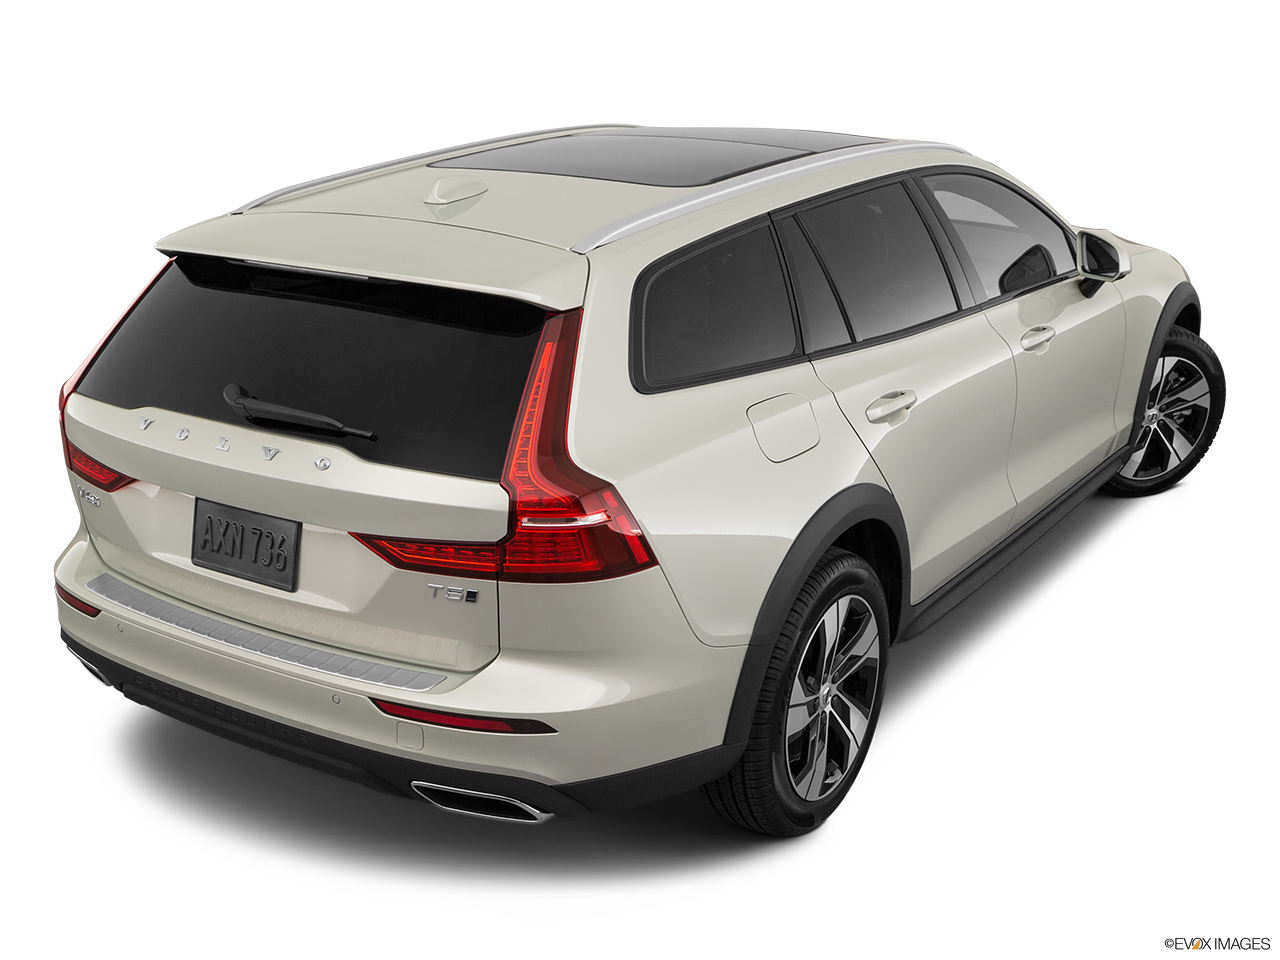 2020 Volvo V60 Cross Country T5 AWD Rear 3/4 angle view.